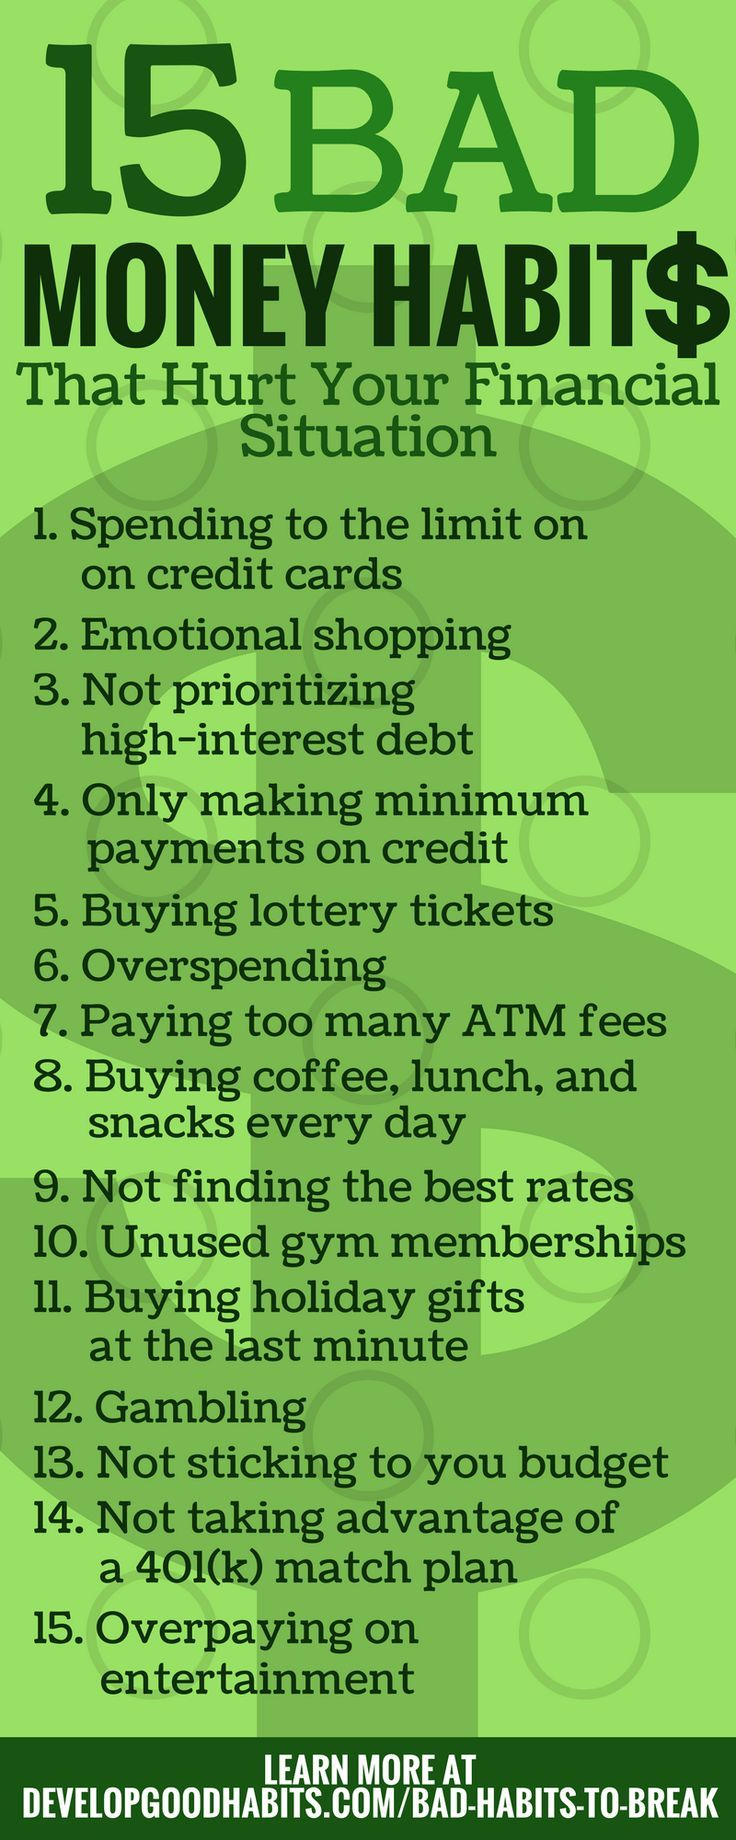 15 Bad Money Habits - That cause overspending and have a huge negative impact on your finances --- Part of 283 Bad habits you need to get rid of....  Money | Money problems | Money Issues | Money routines | Budget | budgeting | saving | savings | frugal living | spending | control spending | emotional shopping | overspending | late fees | overpaying | atm fees | wasting money